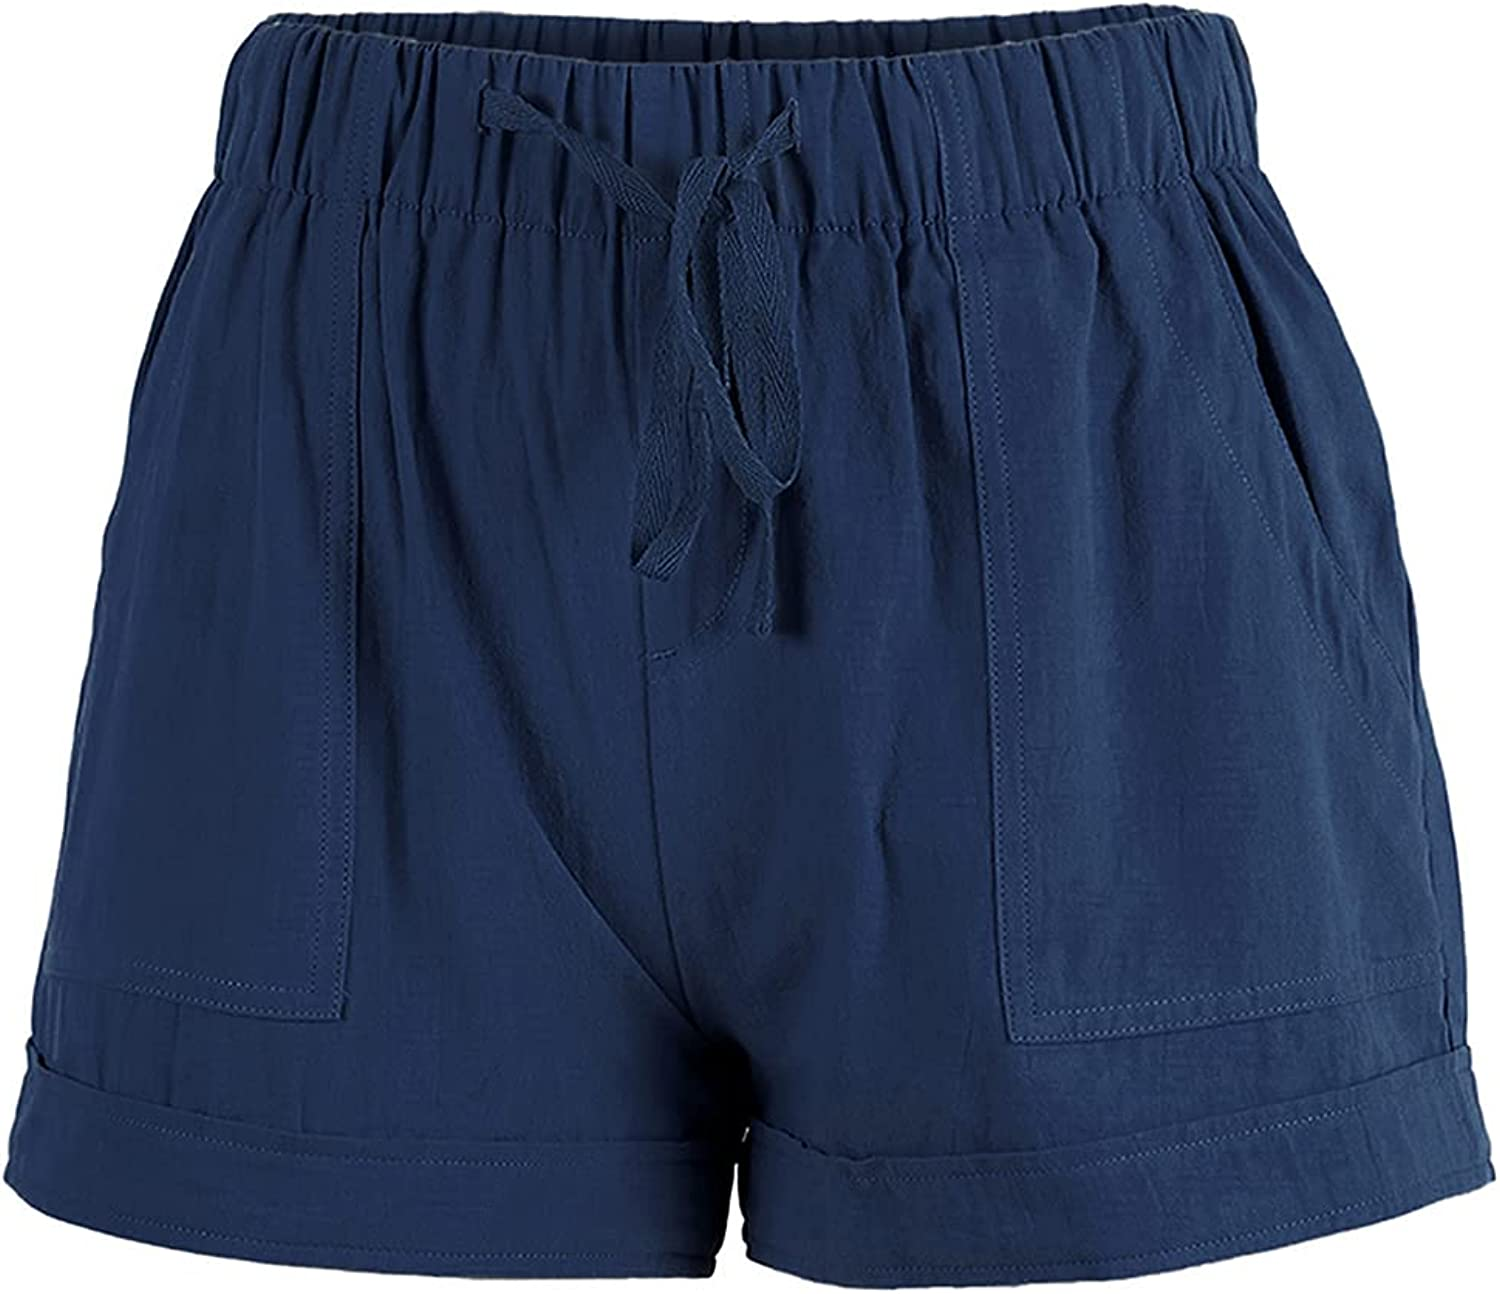 Summer Drawstring Shorts for Women All stores are sold Casual Waist Elastic Spring new work one after another Po Comfy